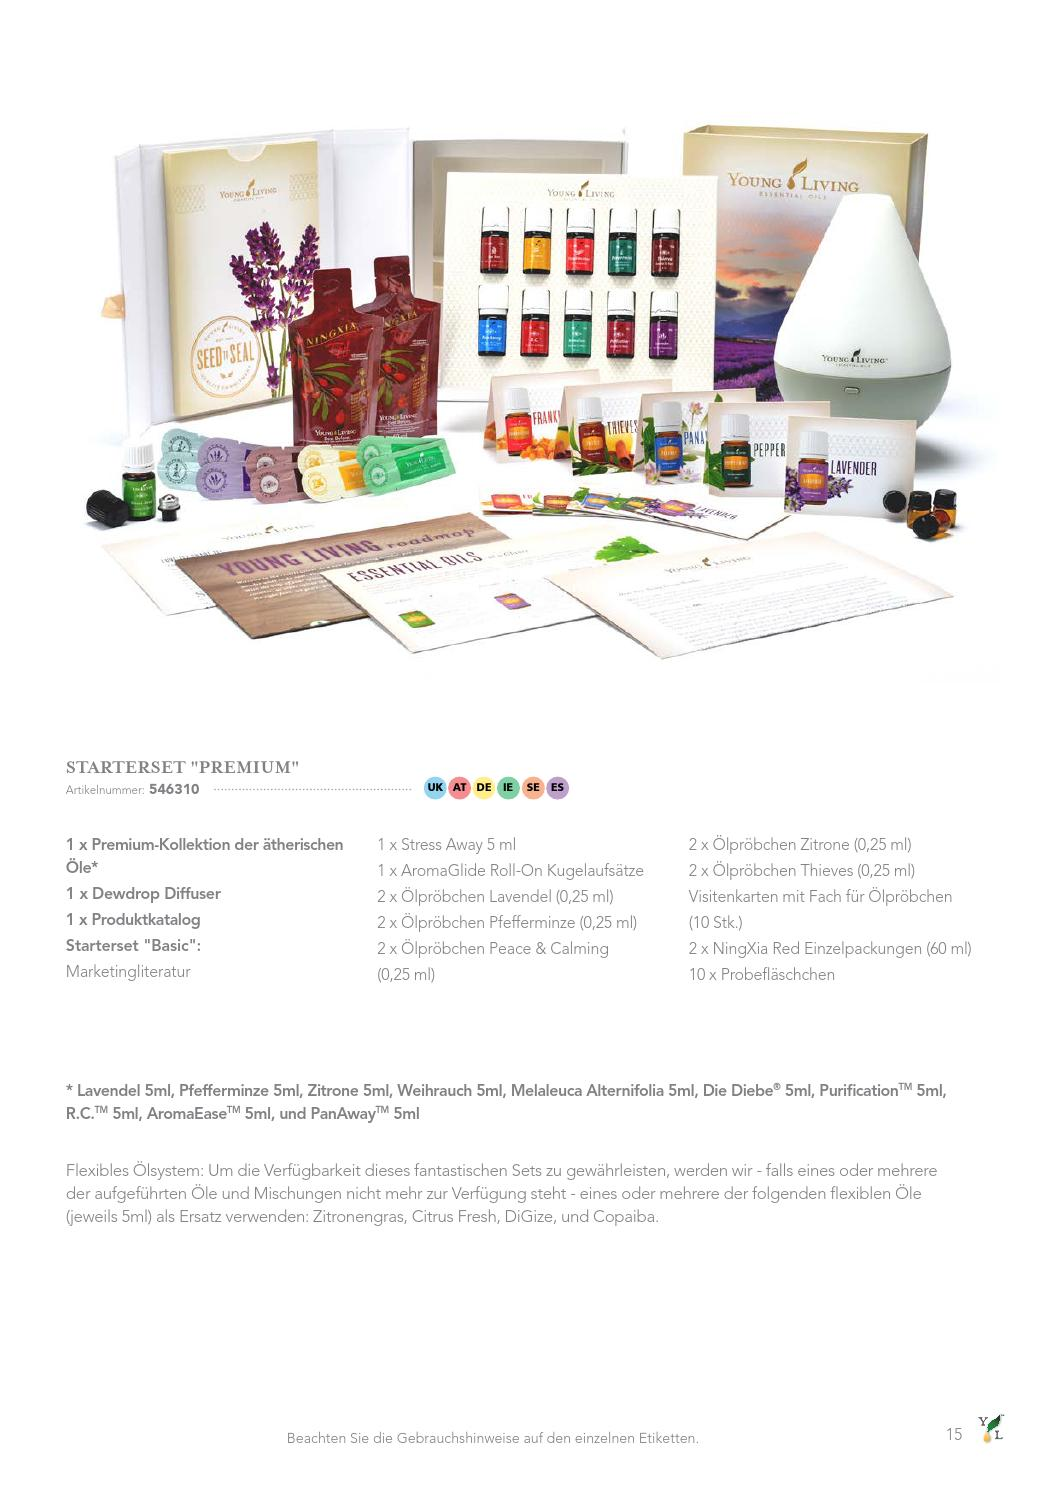 European Product Guide 2015 German By Young Living